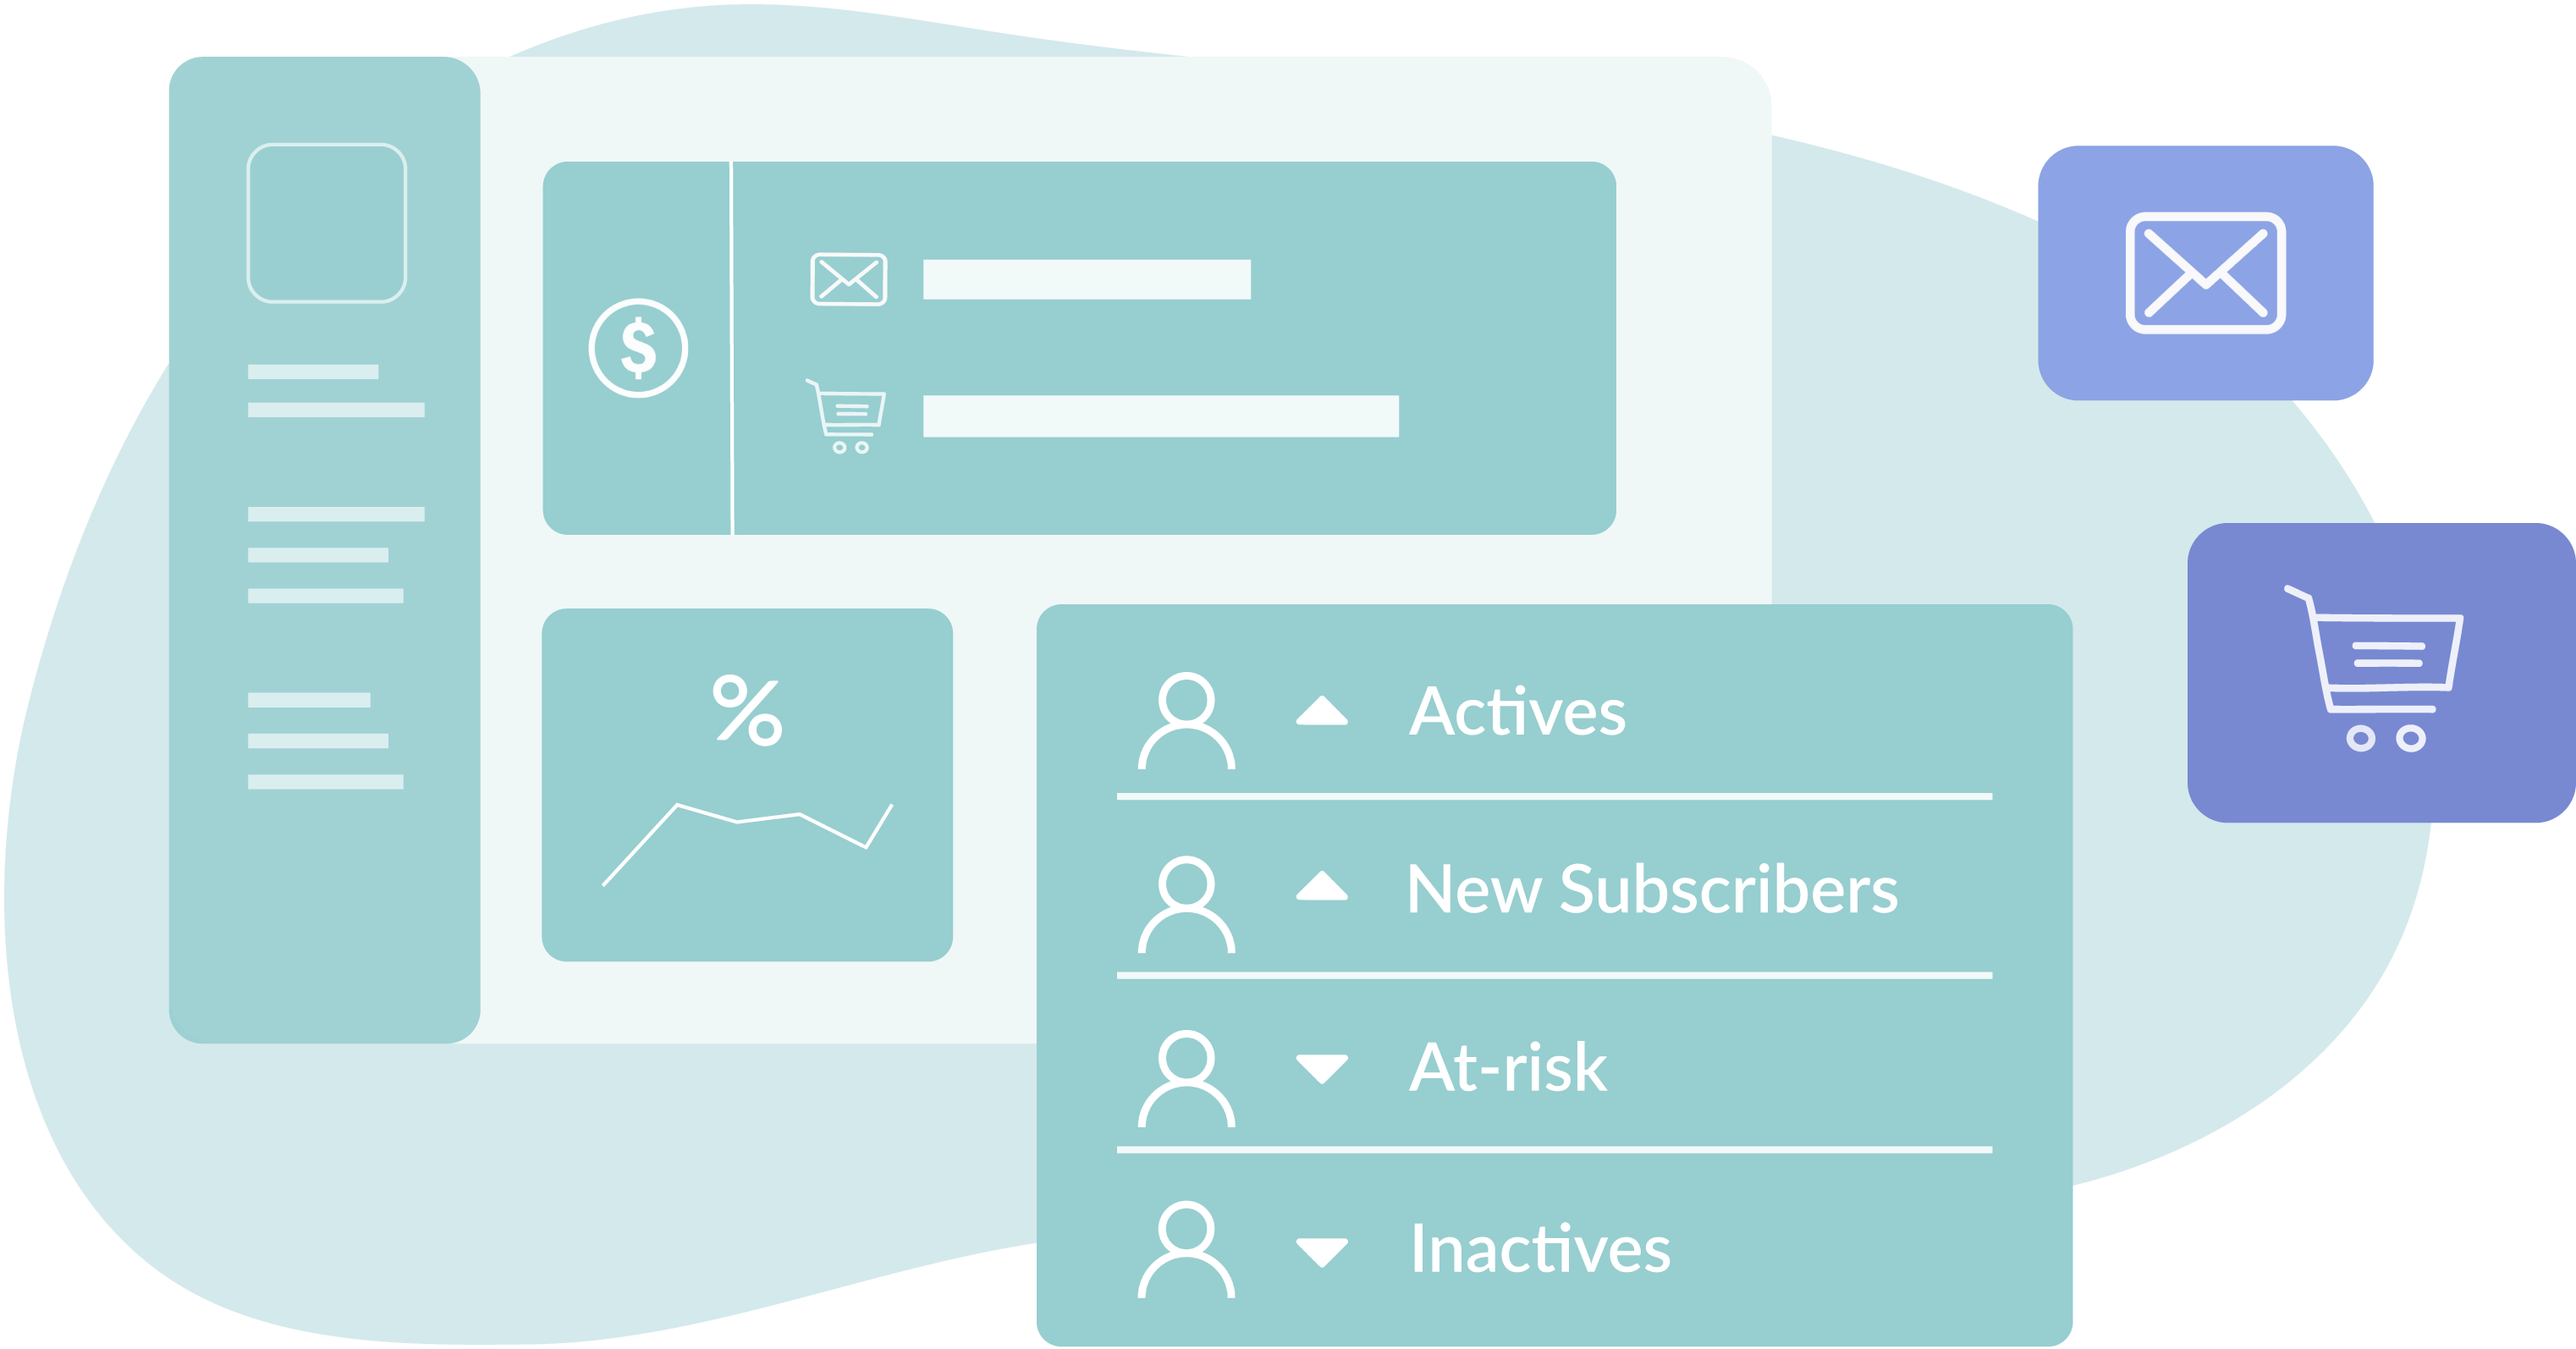 Illustration of Hive email marketing dashboard